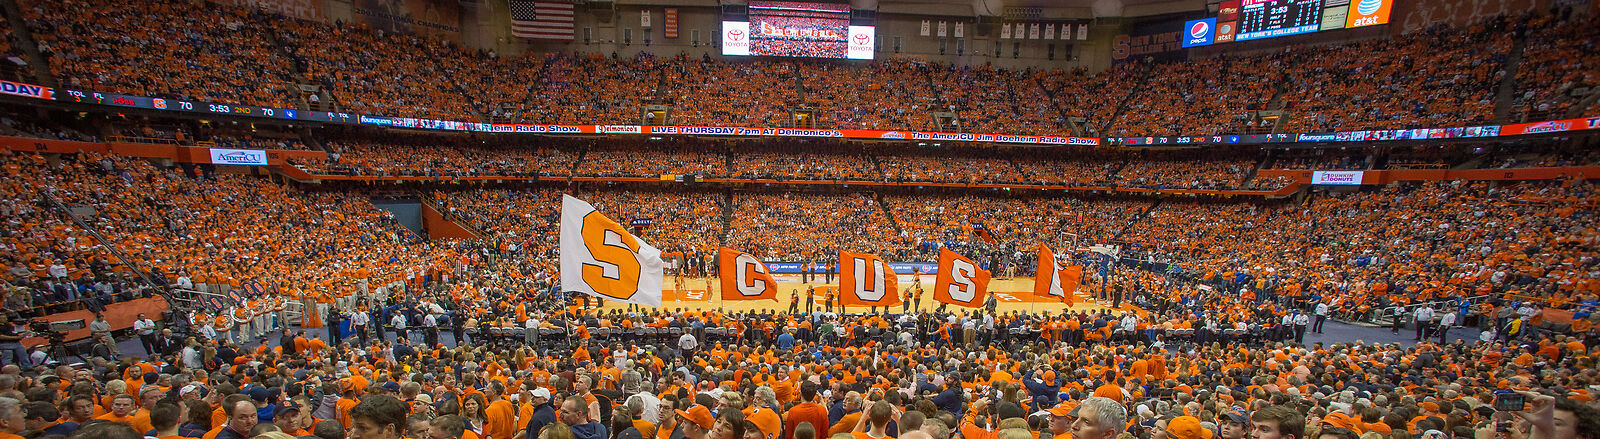 Boston College Eagles at Syracuse Orange Basketball